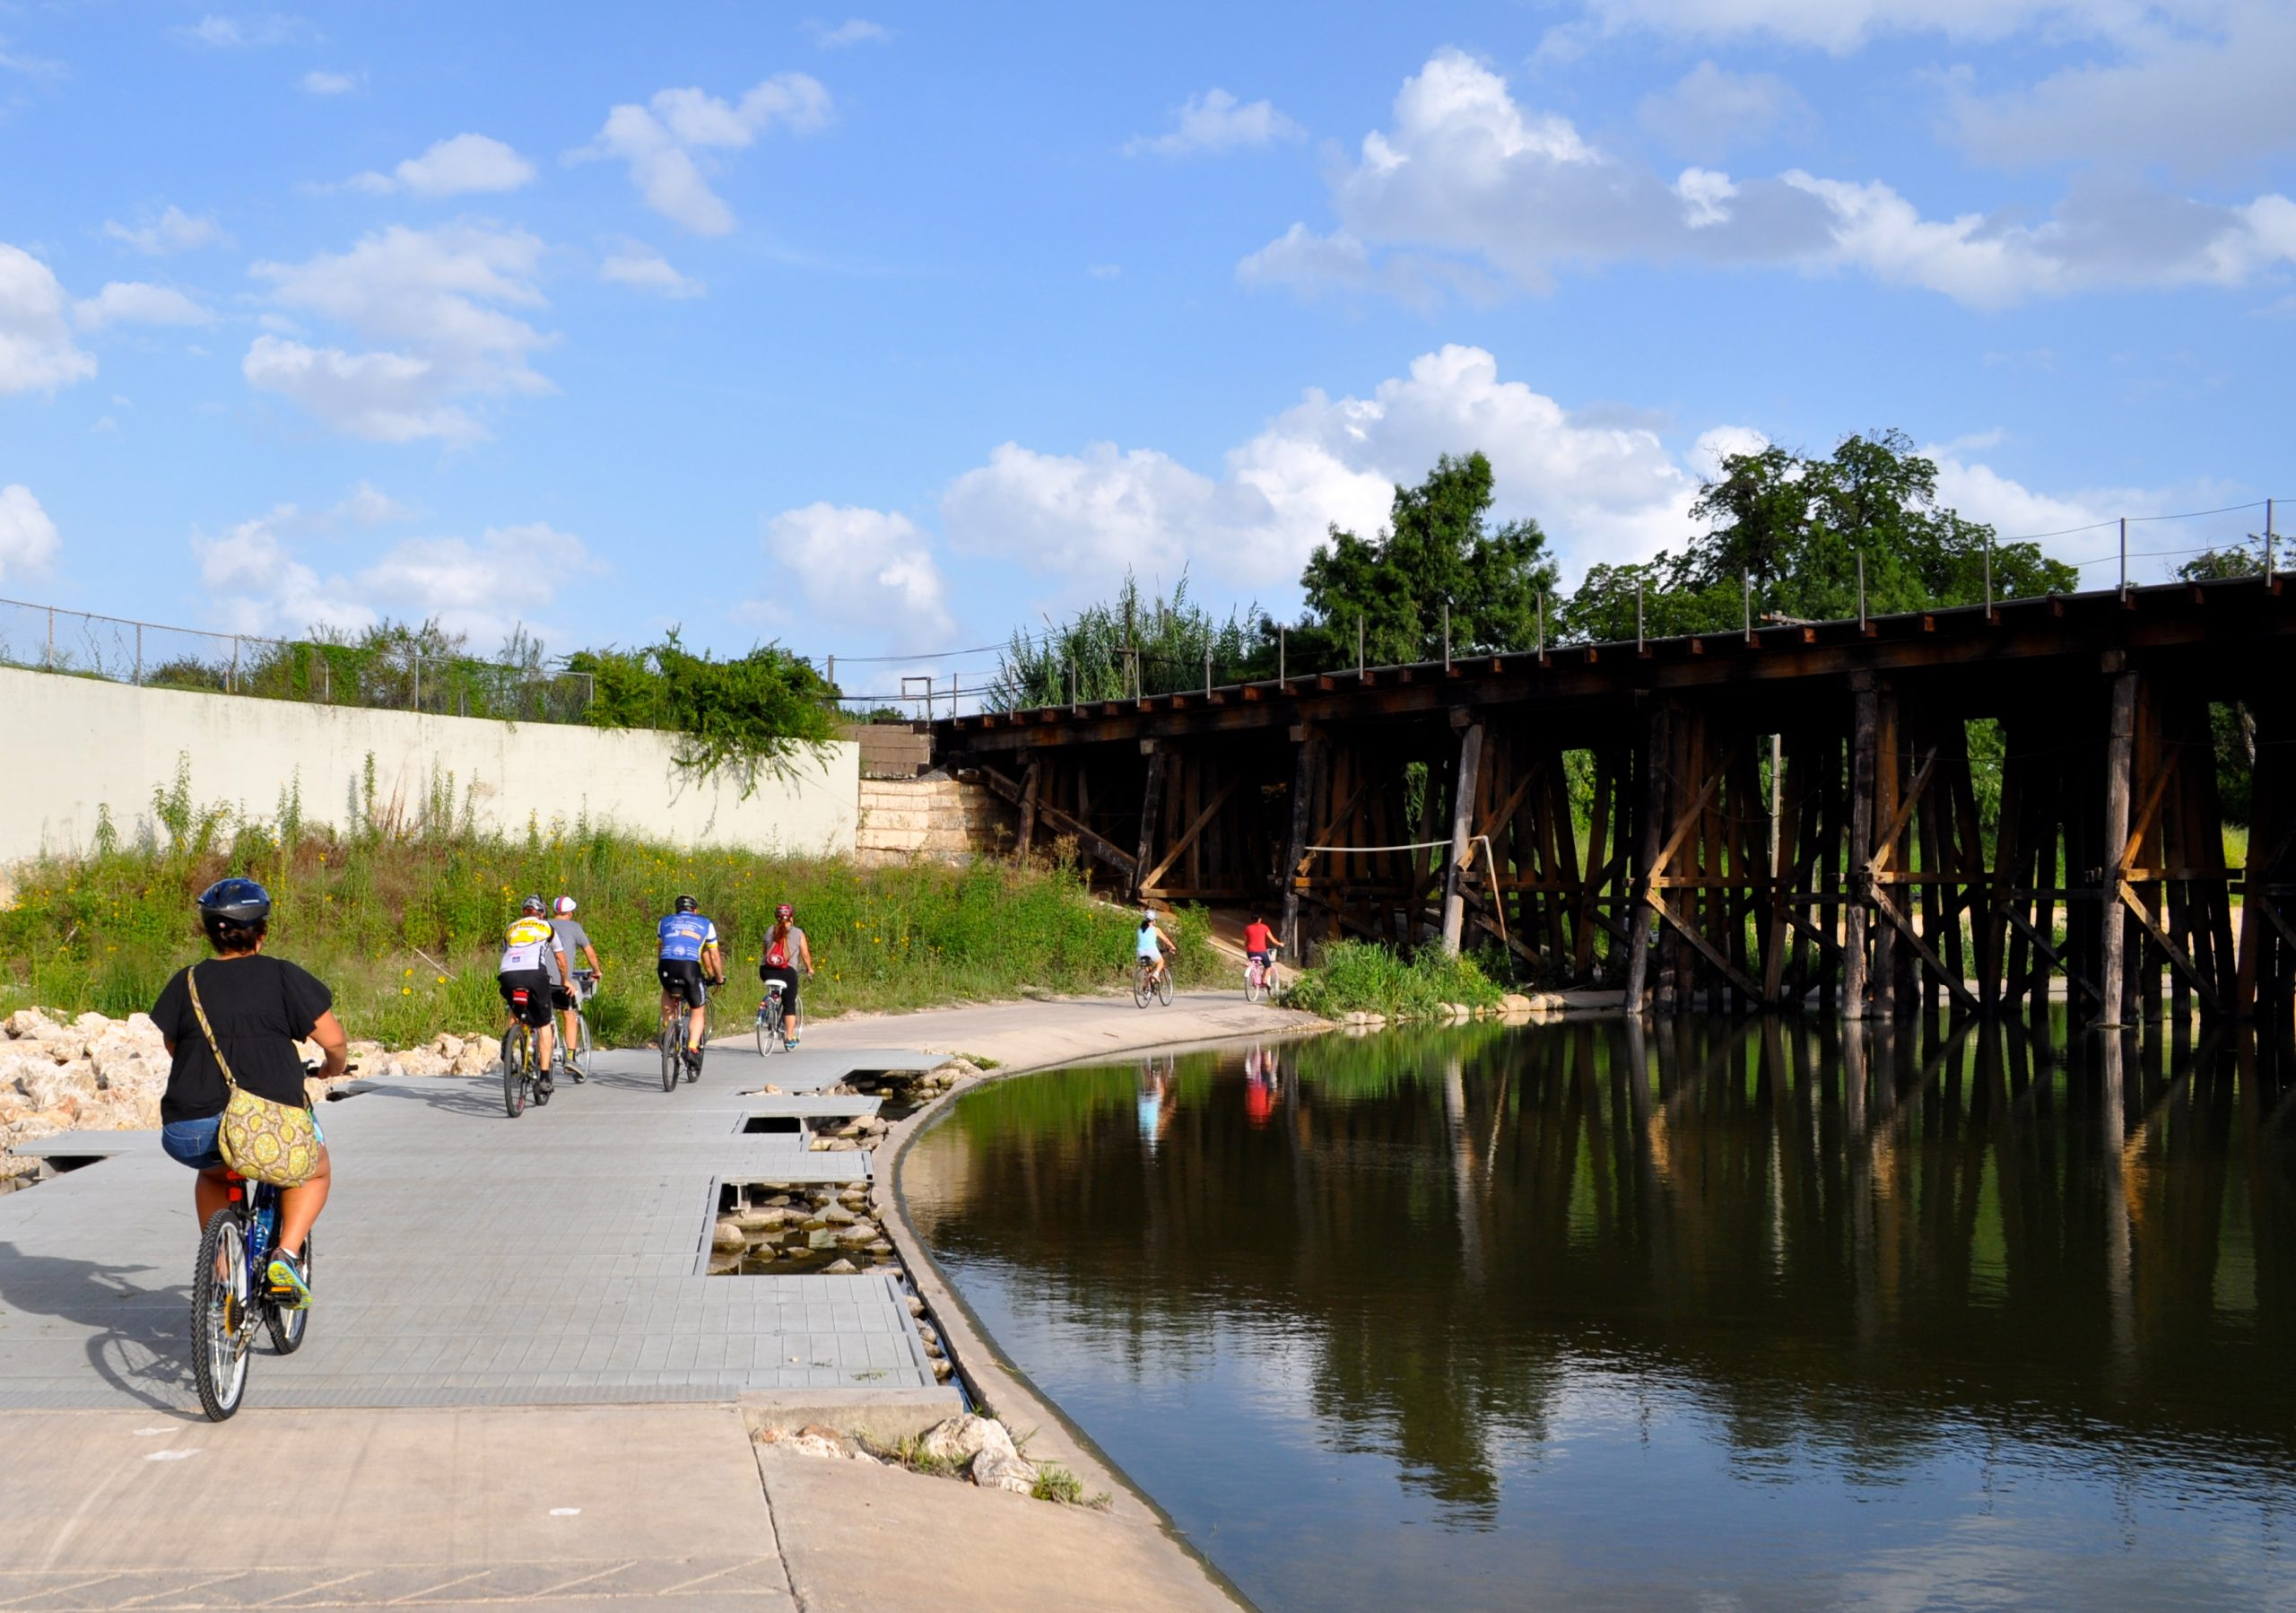 Riders cross under the train bridge on the Mission Reach during the Something Monday ride. Photo by Iris Dimmick.